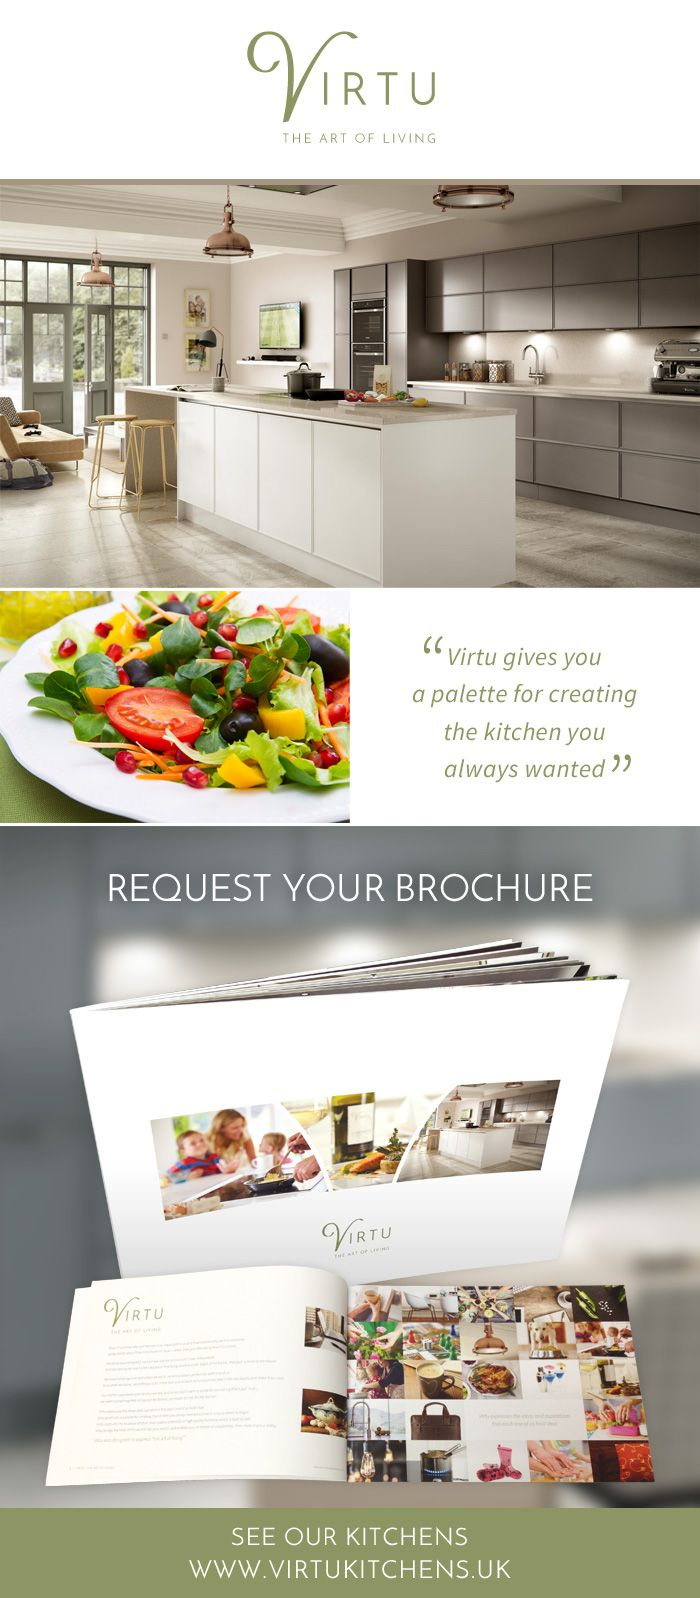 For inspirational kitchen design ideas order Your Free Virtu Kitchens Brochure Today! Includes Helpful Tips & a Step-By-Step Guide To Creating Your Perfect Kitchen. #TheArtOfLiving